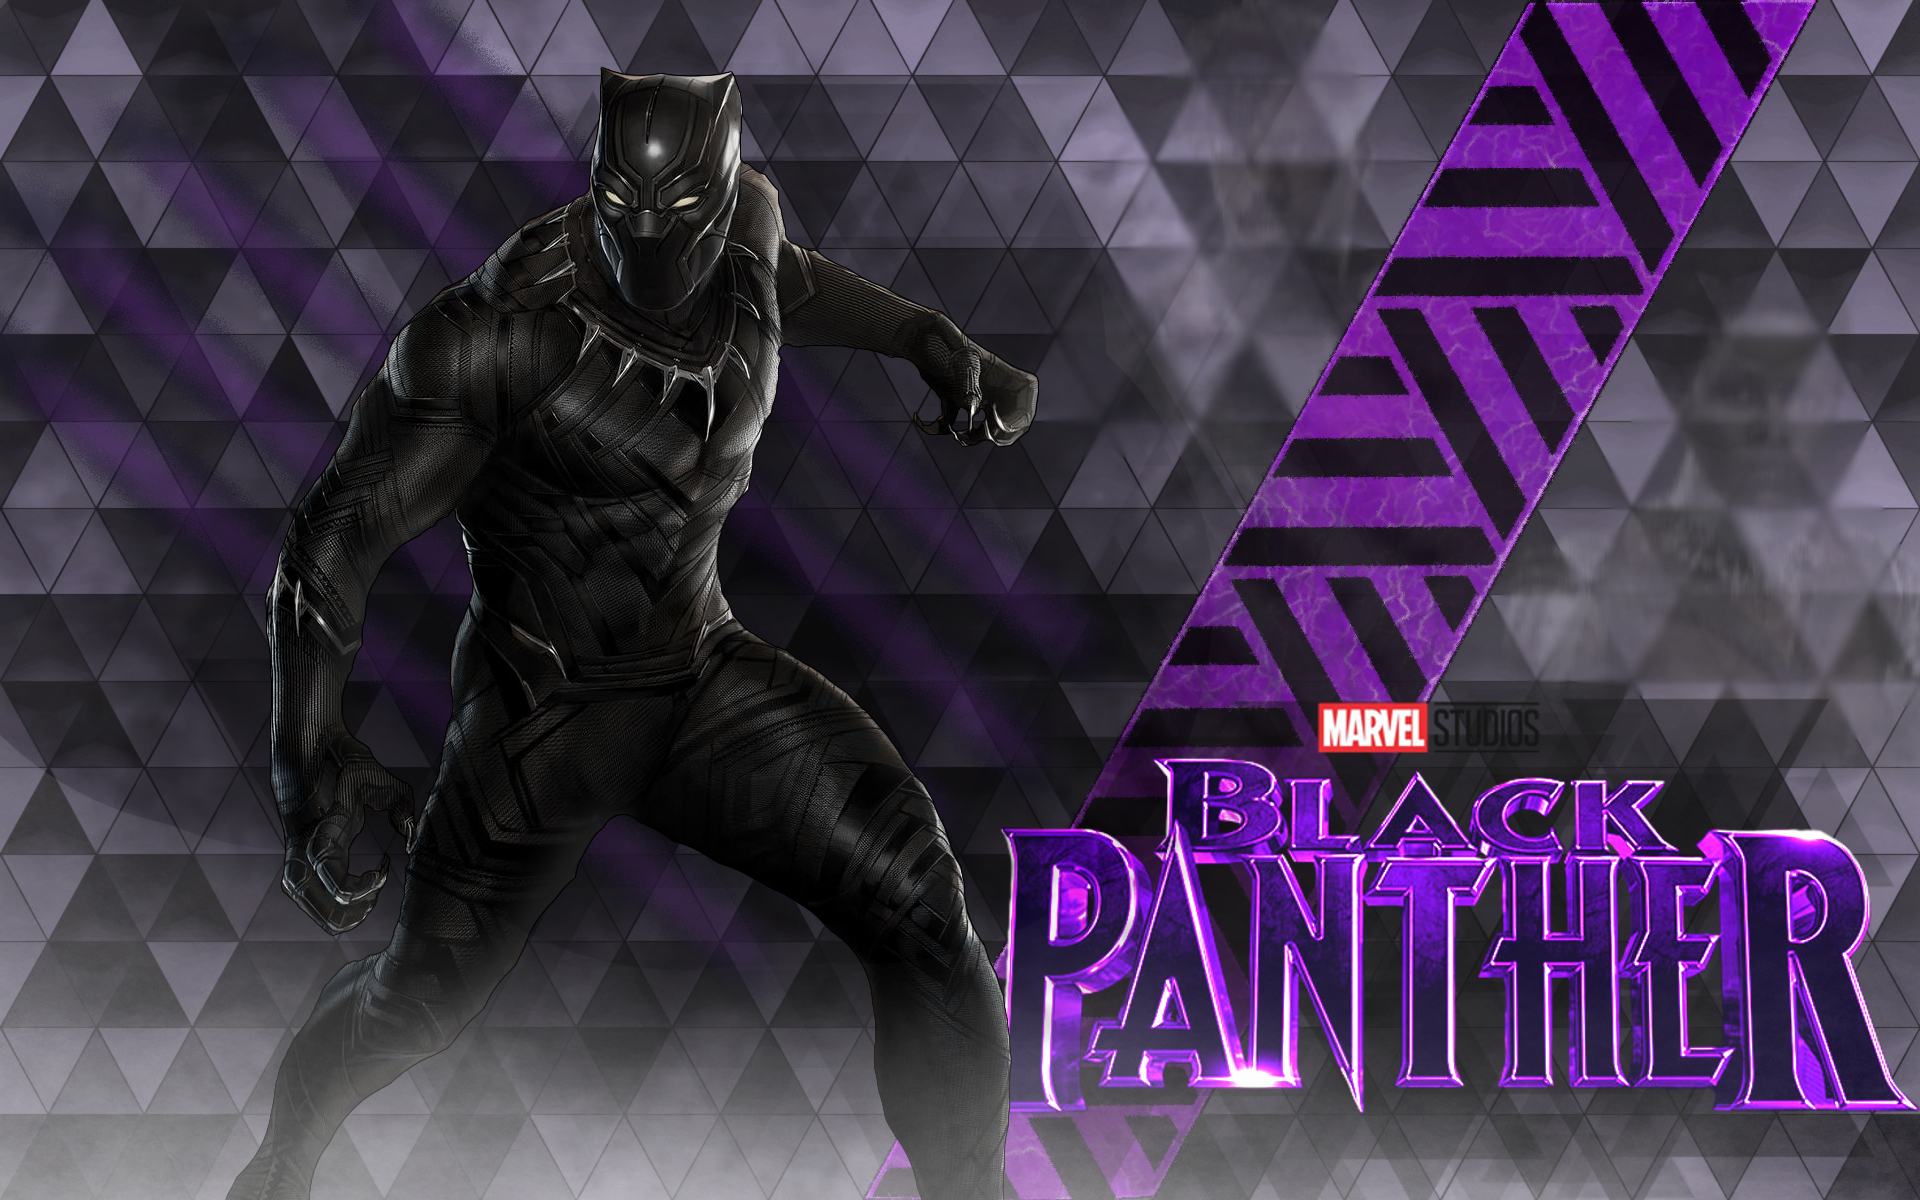 Black Panther 2018 Wallpaper 1900 X 1200 By Scrillrock On Deviantart